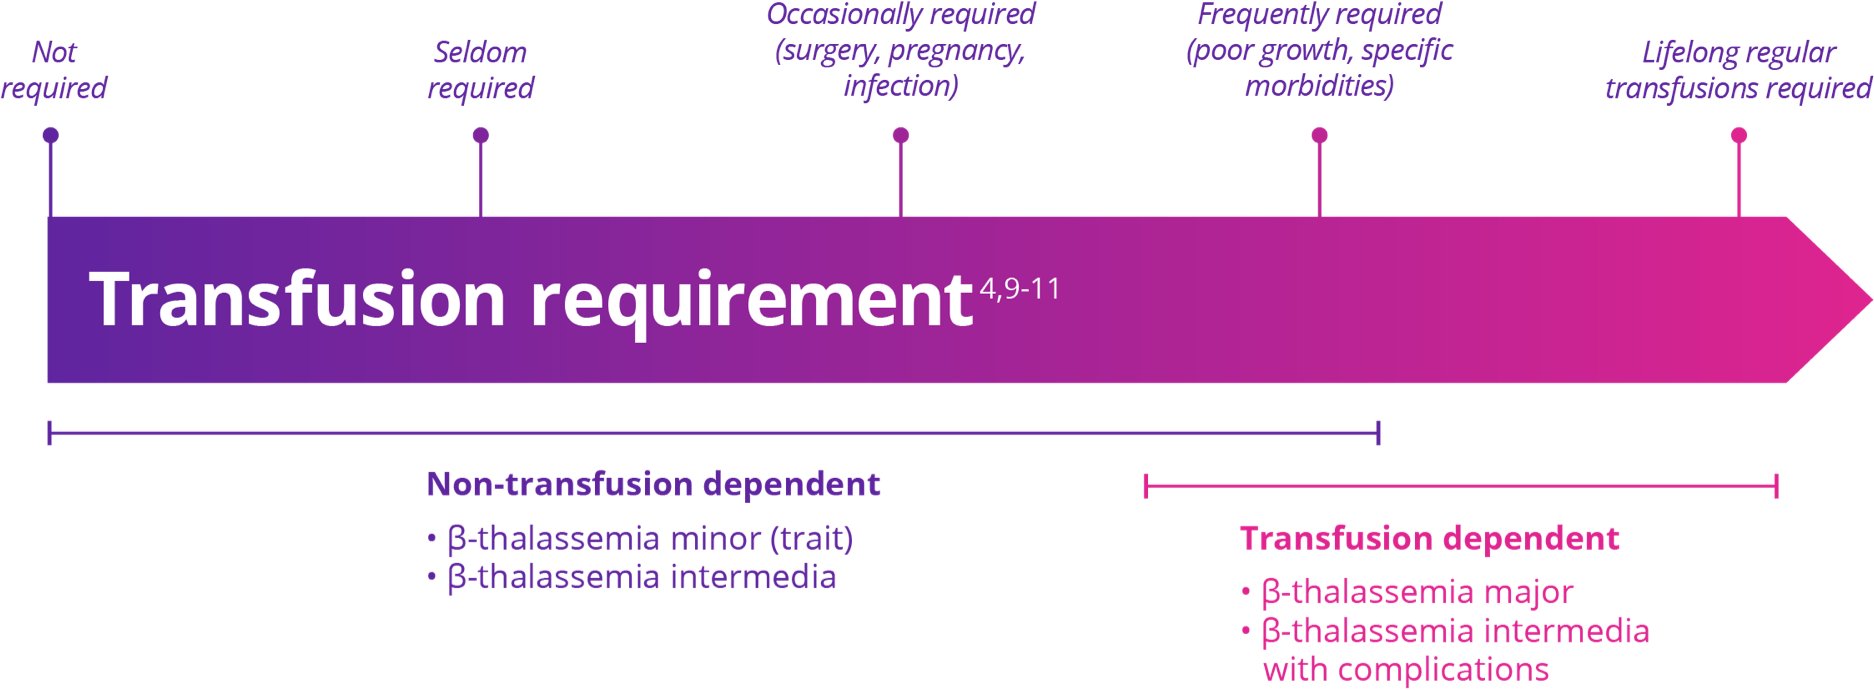 ß-Thalassemia Patients Are Classified As Transfusion Dependent Or Non-Transfusion Dependent